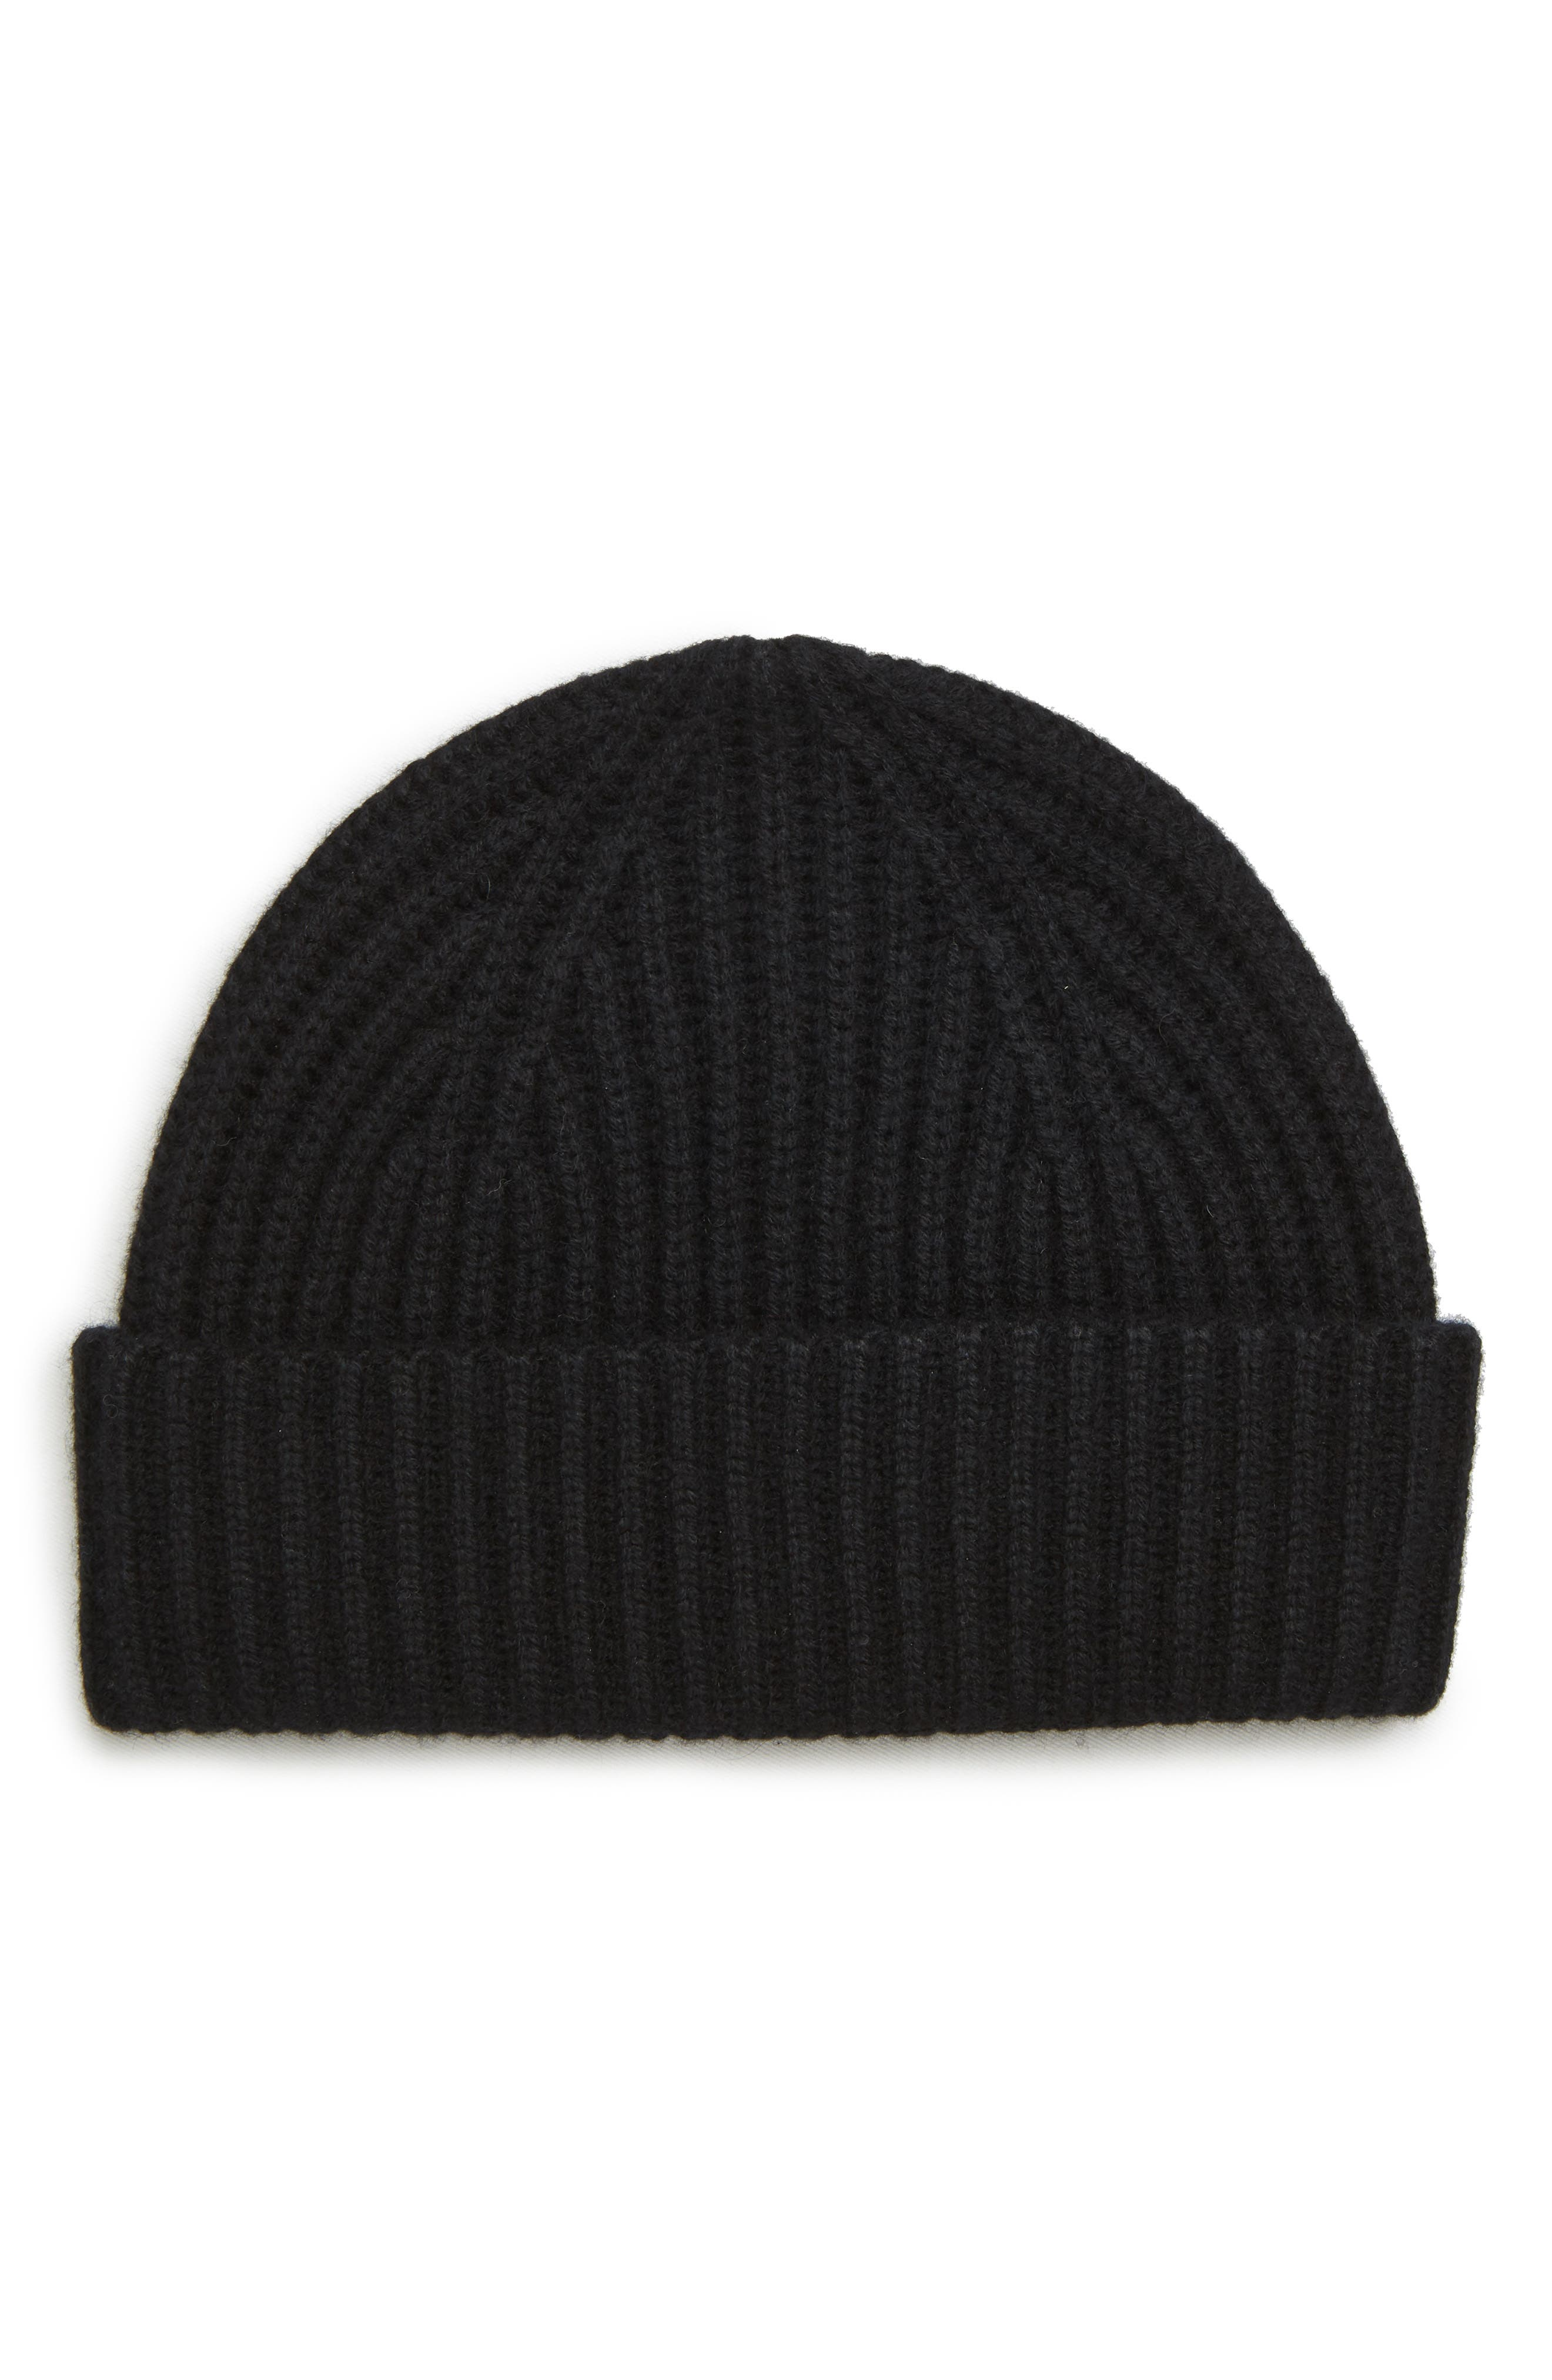 Cashmere Knit Cap,                         Main,                         color, BLACK